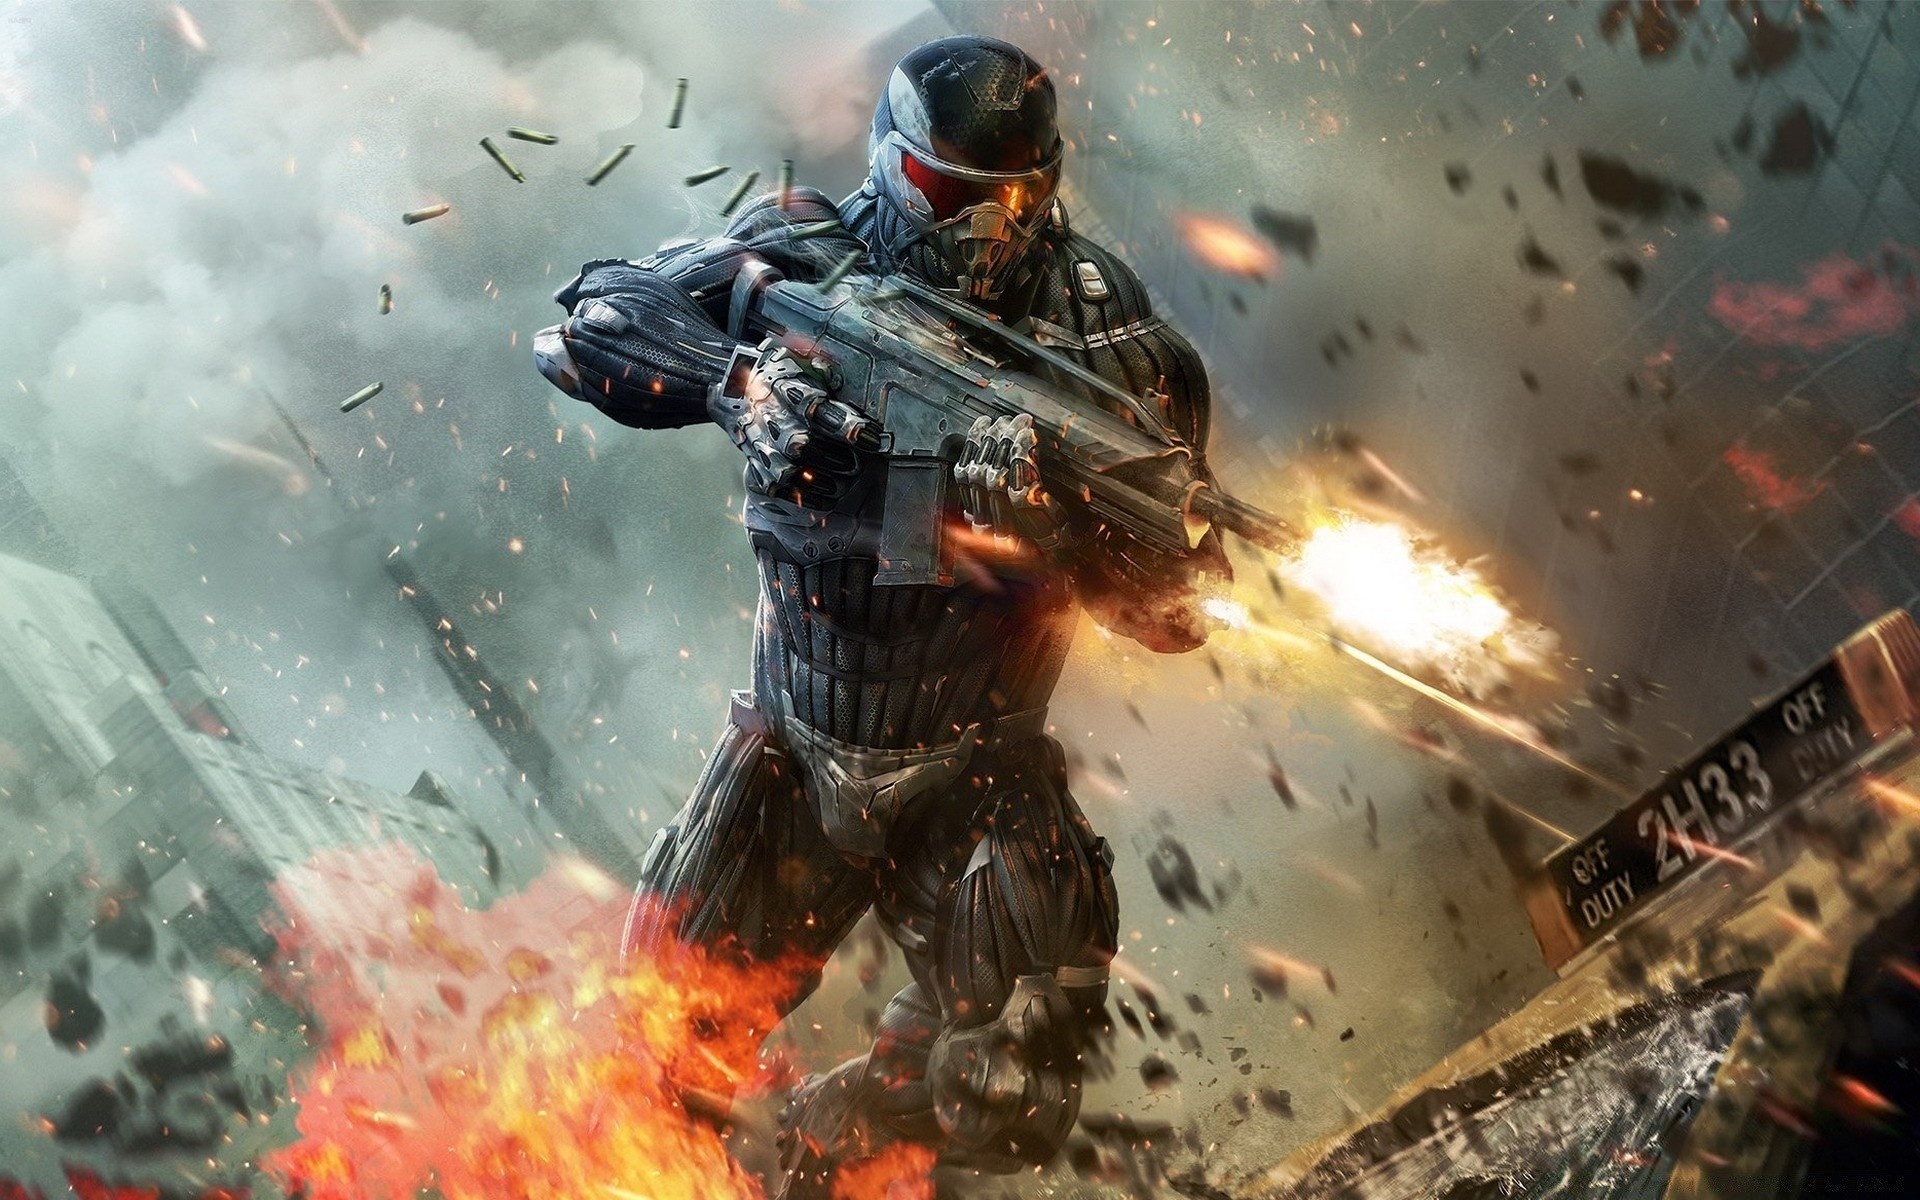 Crysis 2 Shooter Video Game Android Wallpapers For Free